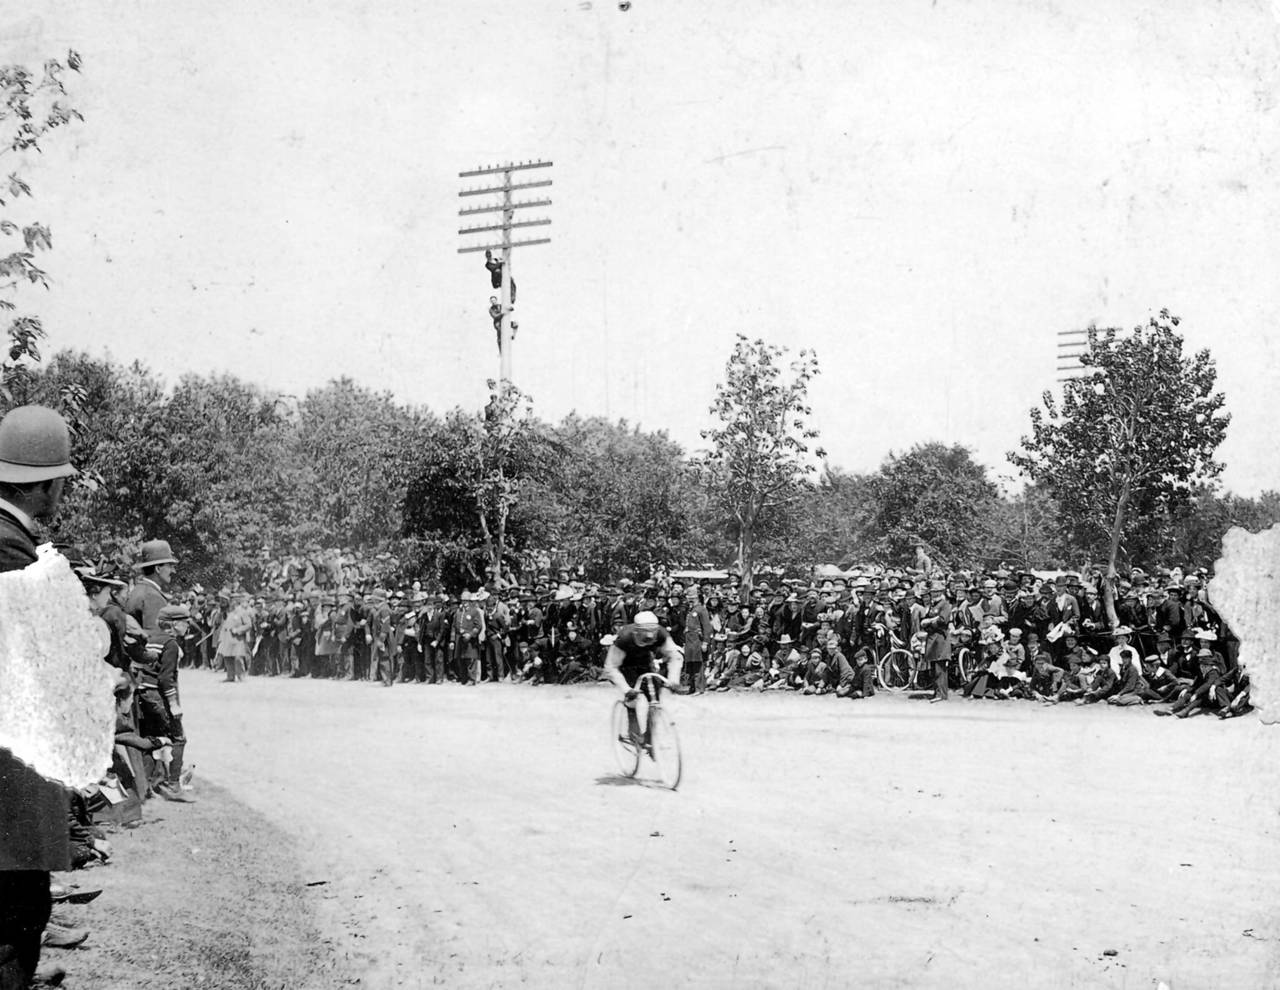 People gather to watch a bicycle race in the community of Englewood in Chicago, circa 1897.